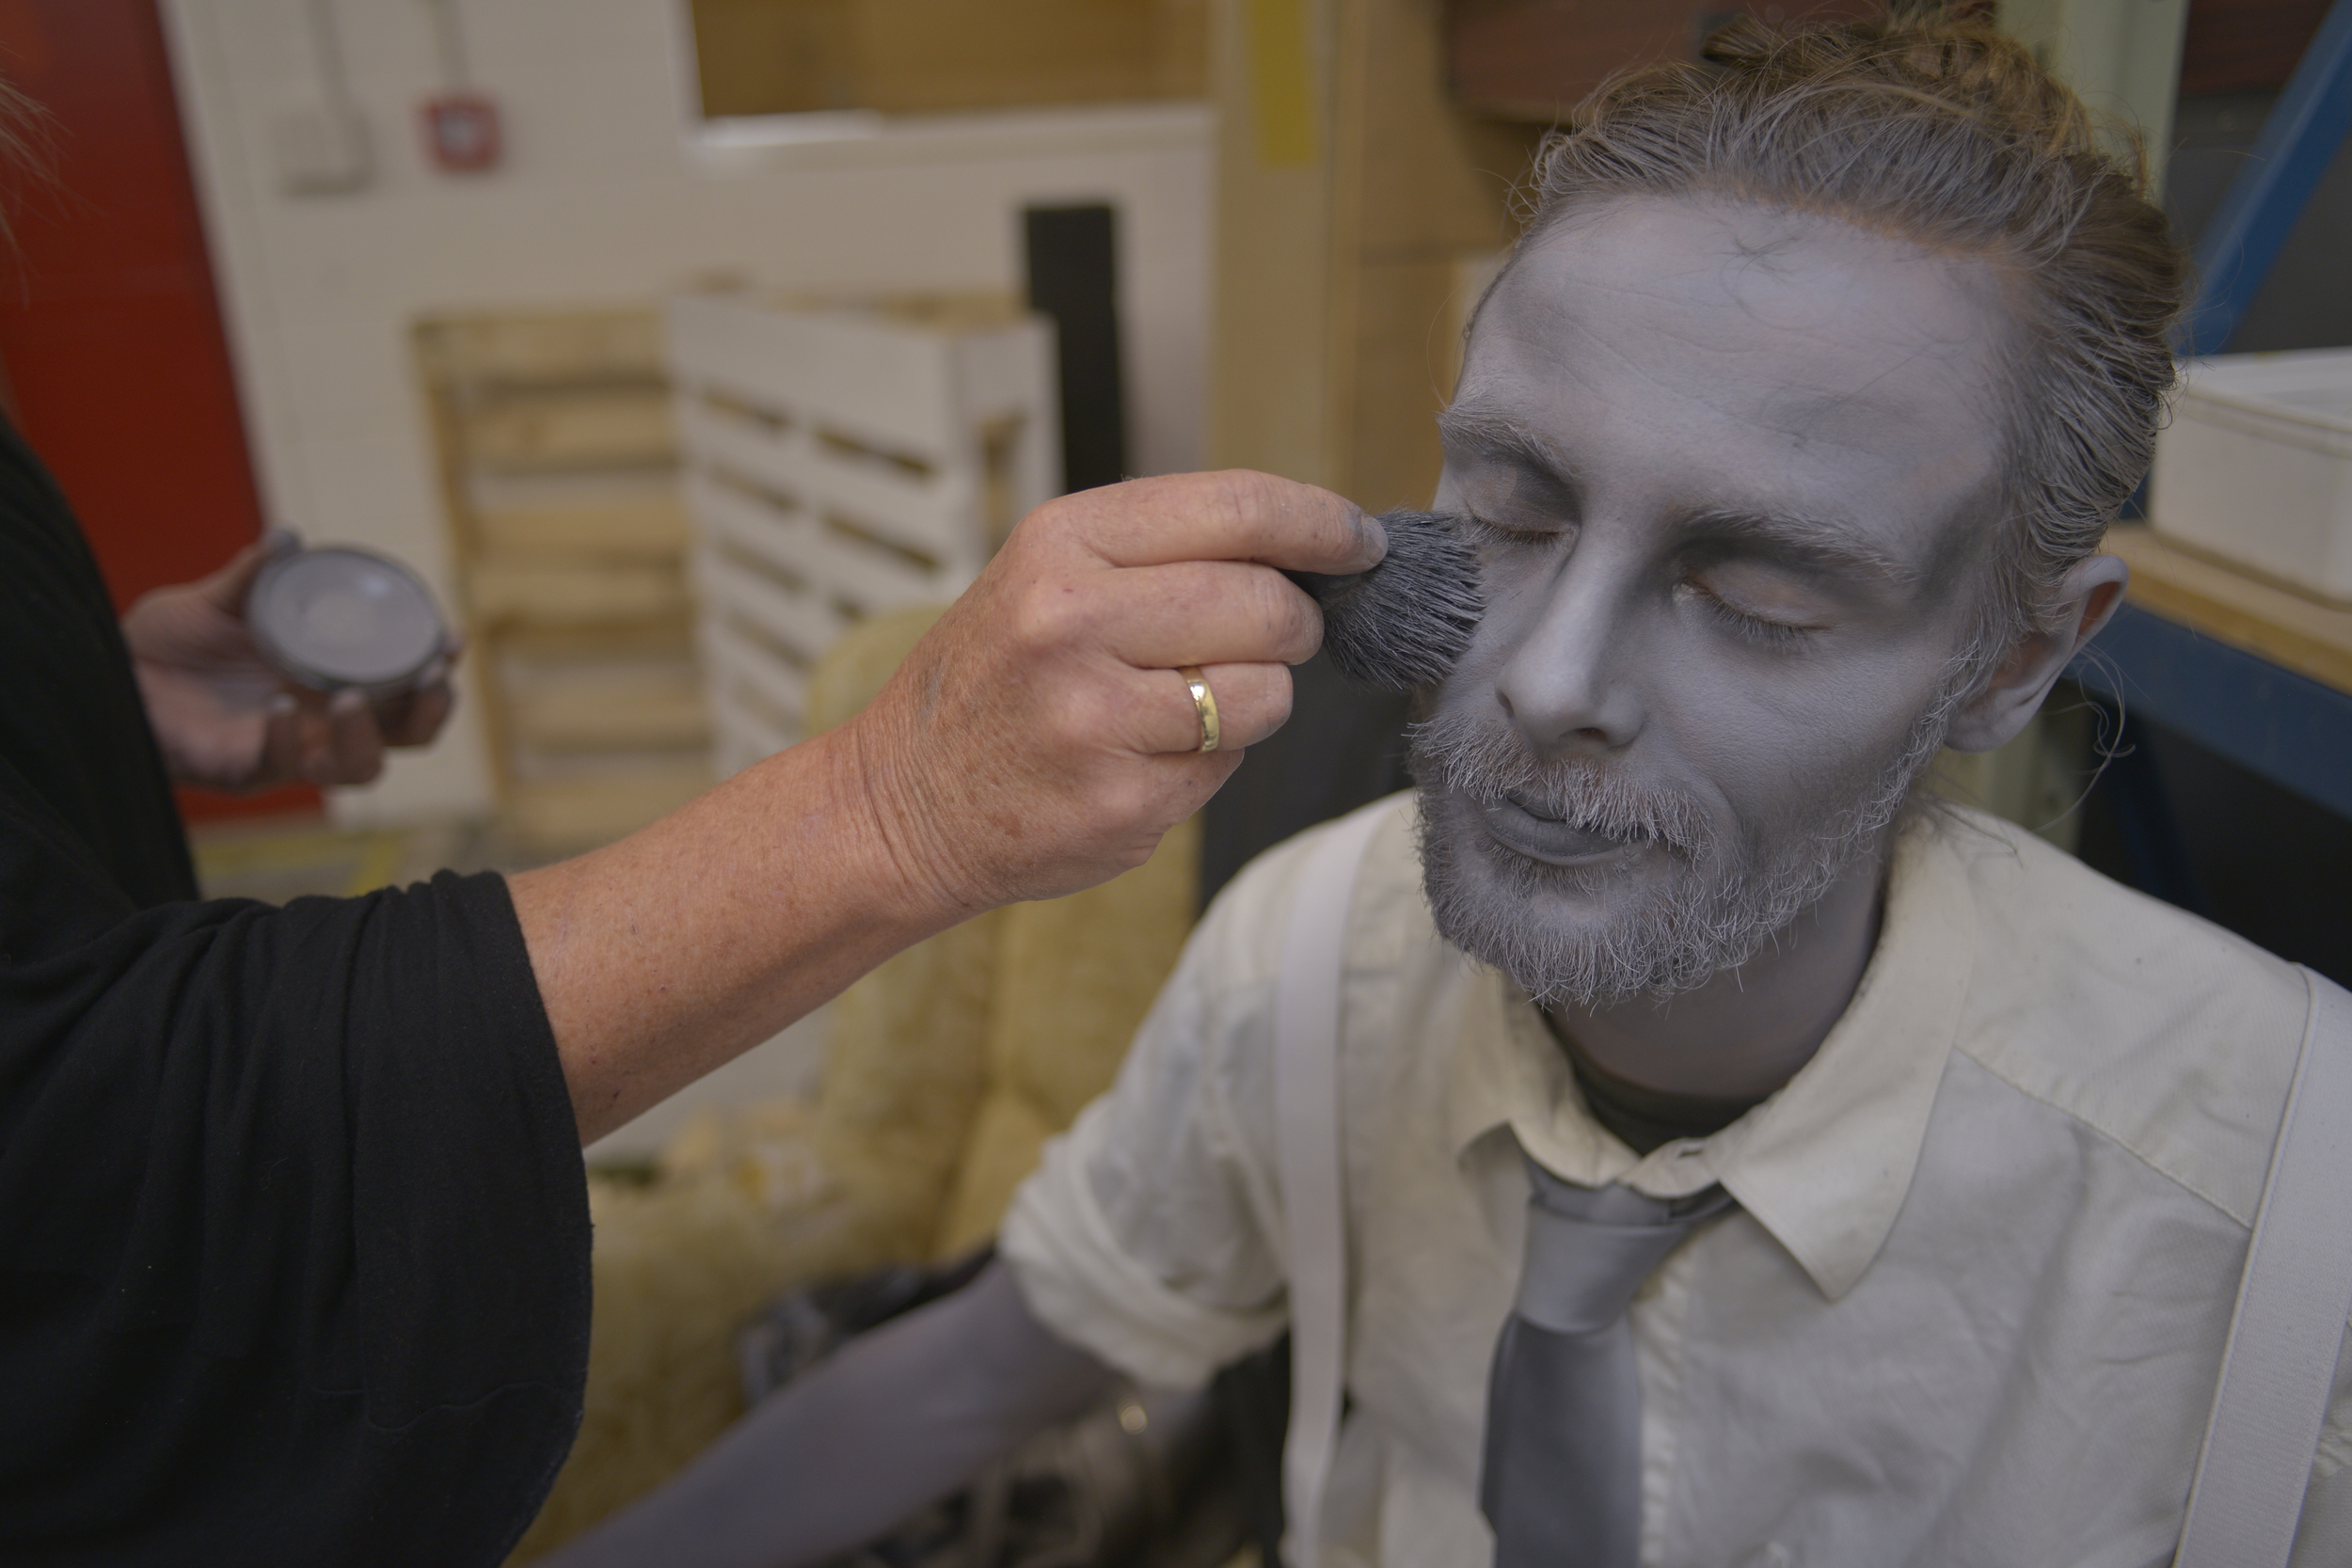 Lance having his monochrome make-up applied by artist Nicole Heydenrijk from  BODY FX